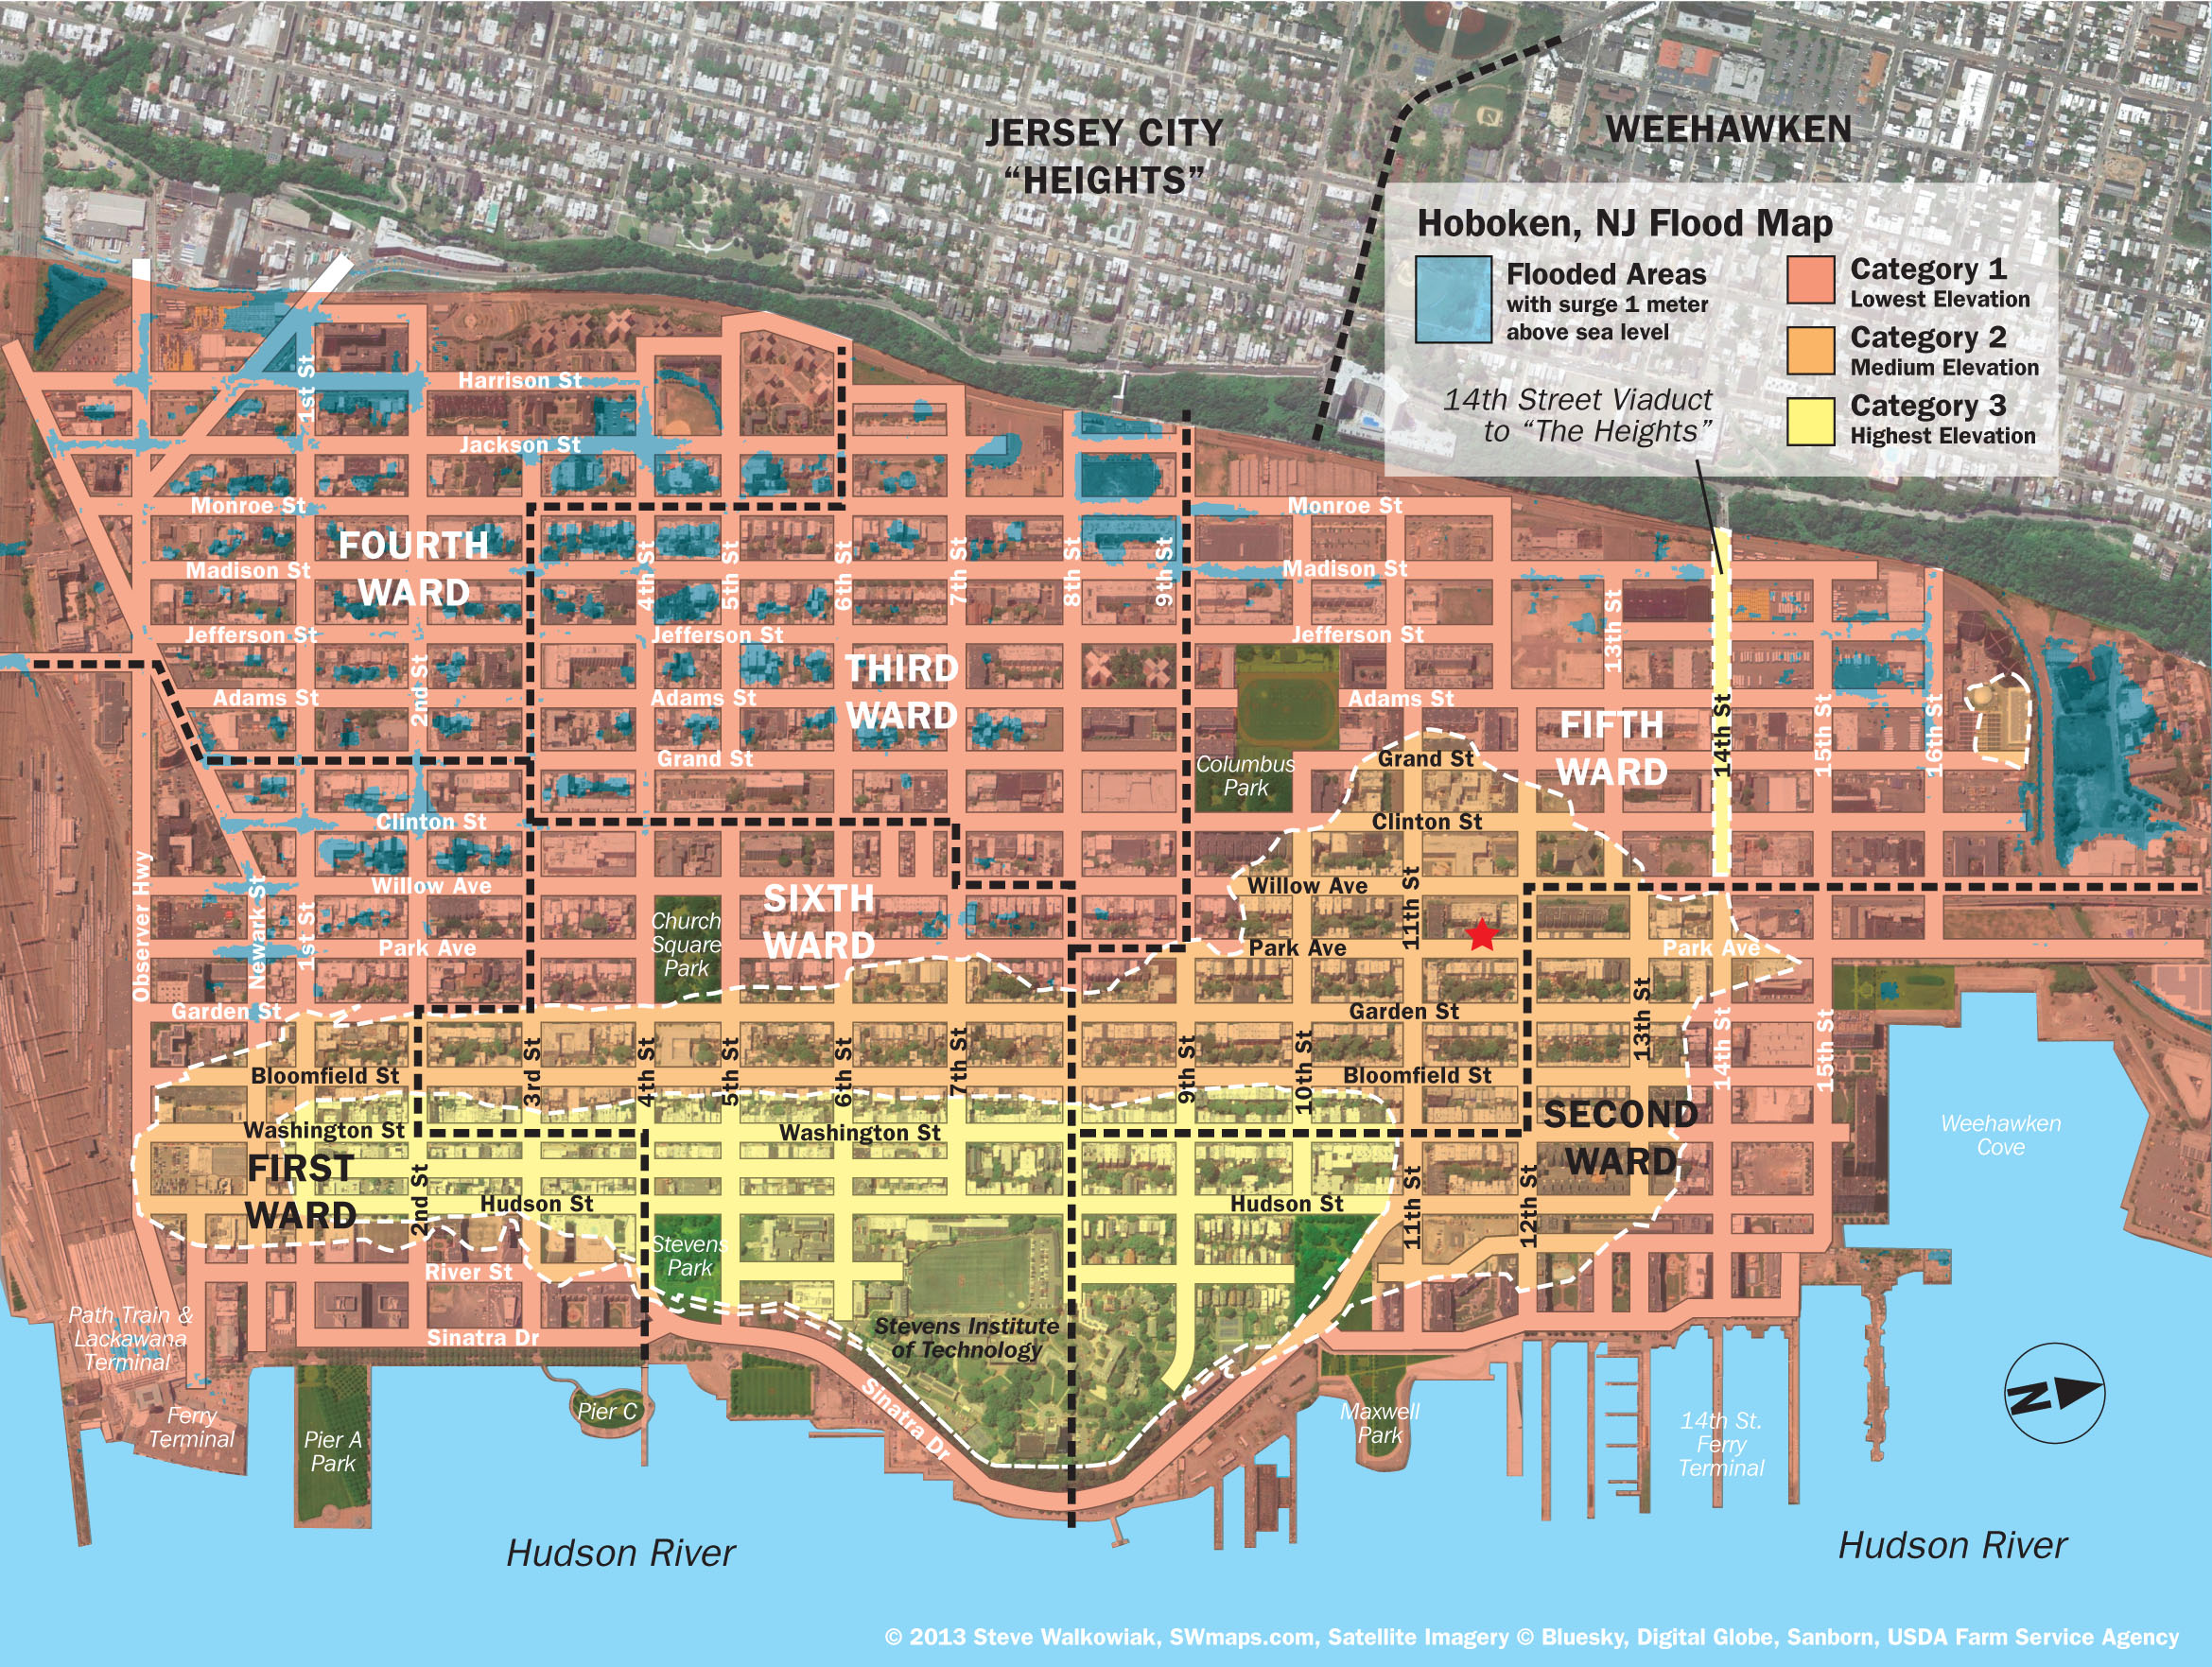 New Hoboken Flood Map With Water Levels Post Hurricane Sandy - Fema flood zone map florida